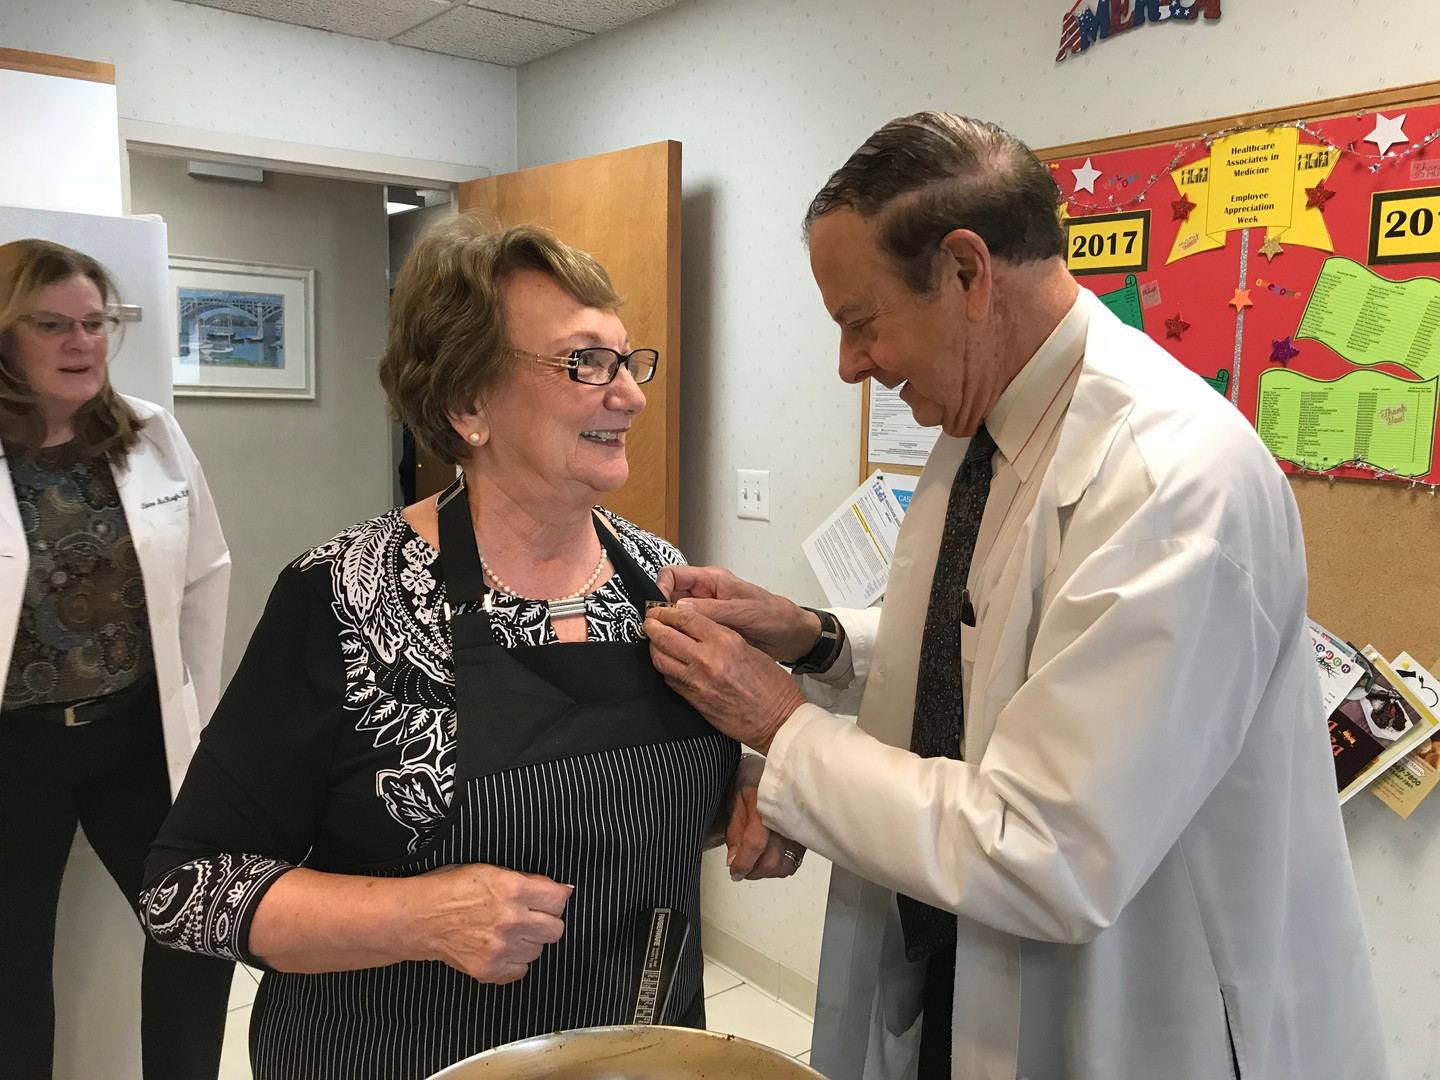 Neurologist, Dr. Kulick pins Kathy T. for years of service